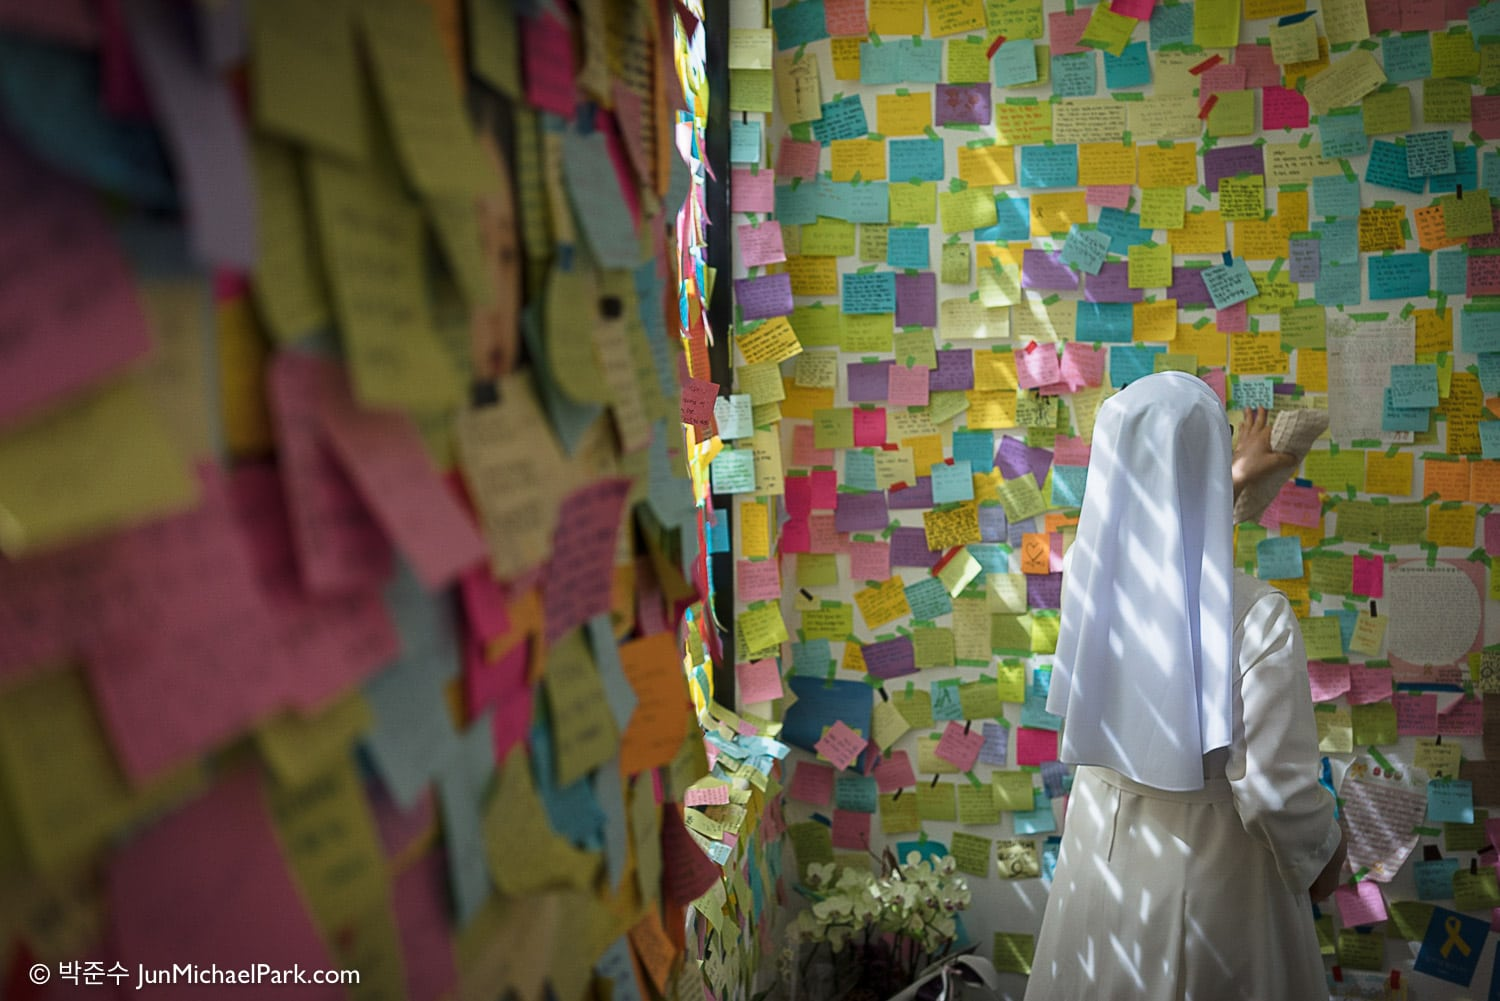 At a Sewol student victim's posthumous art exhibition, a catholic nun carefully tends tribute notes left by visitors.